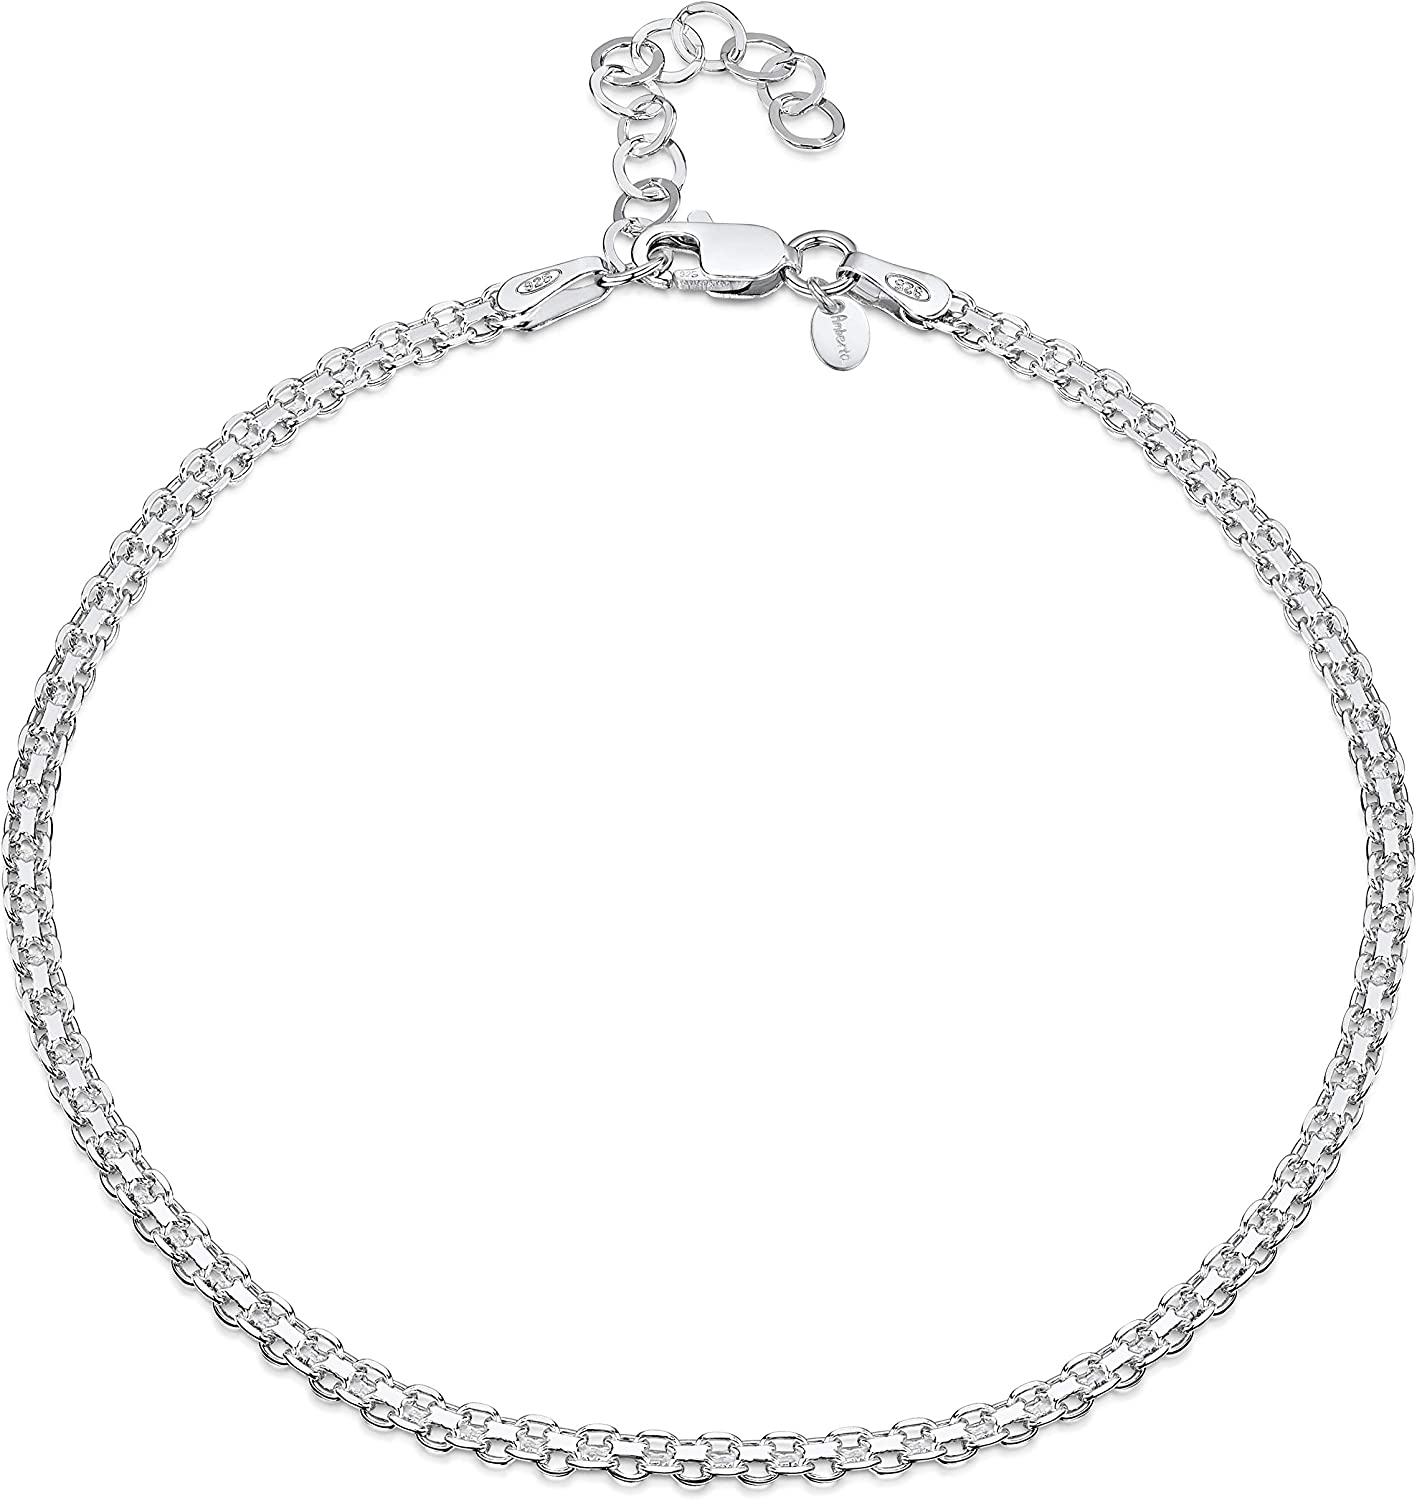 Jewelry Chain Anklets Sterling Silver Singapore with 1in ext Anklet